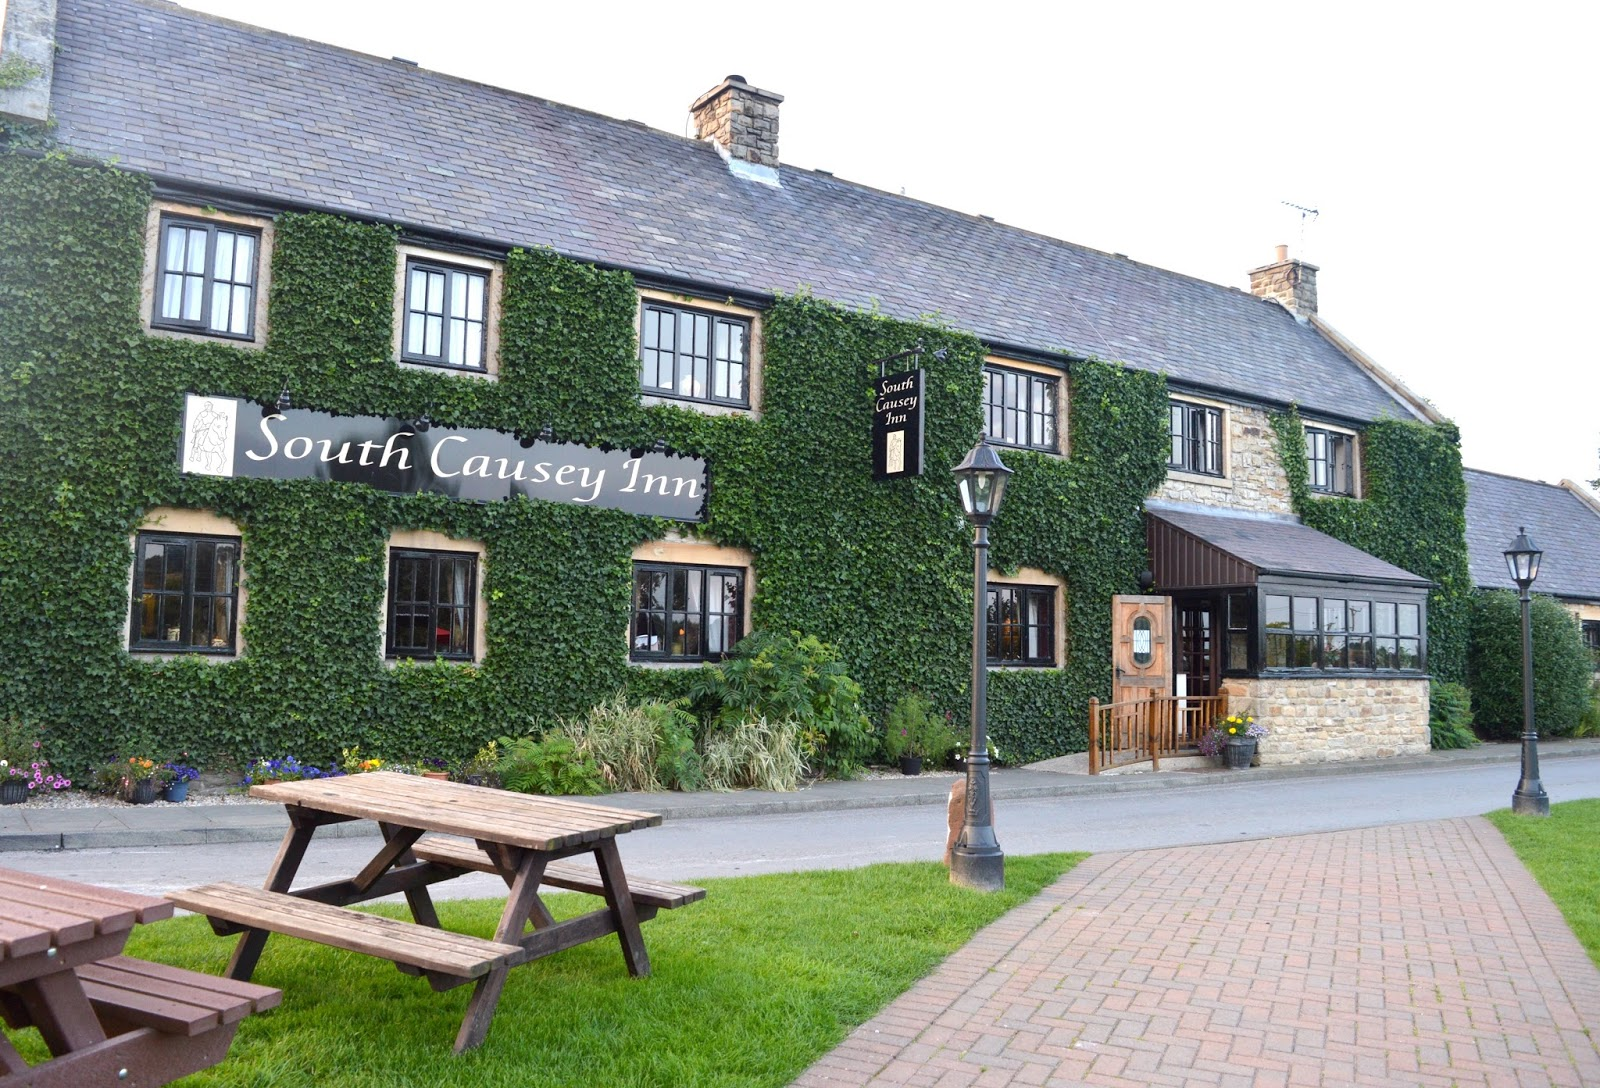 Weddings at the South Causey Inn, Co Durham